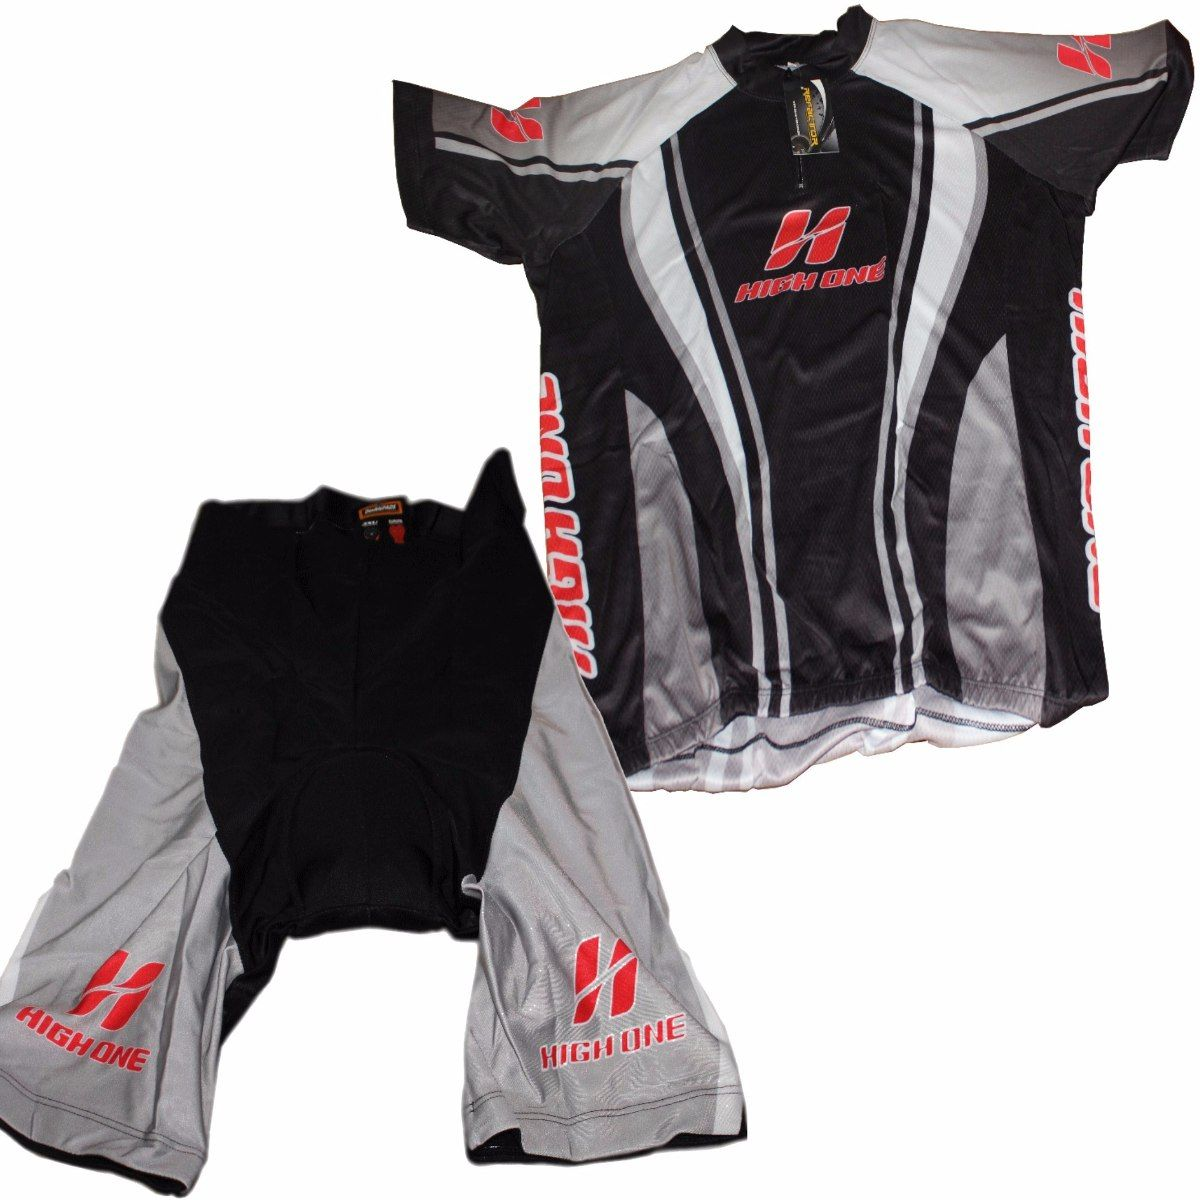 Conjunto Ciclismo Masculino - High One